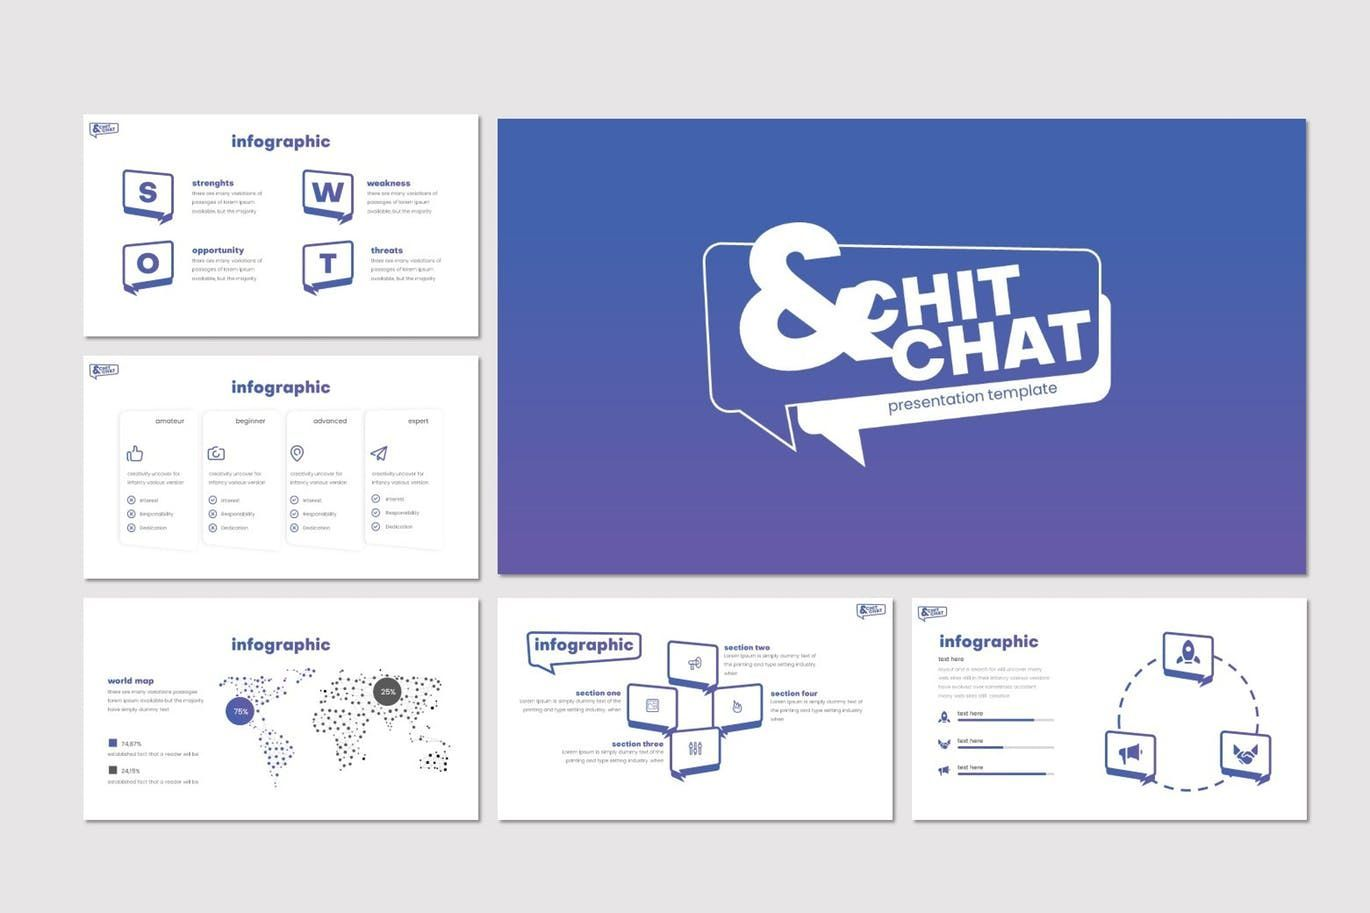 Chit Chat - PowerPoint Template, Slide 5, 07723, Presentation Templates — PoweredTemplate.com